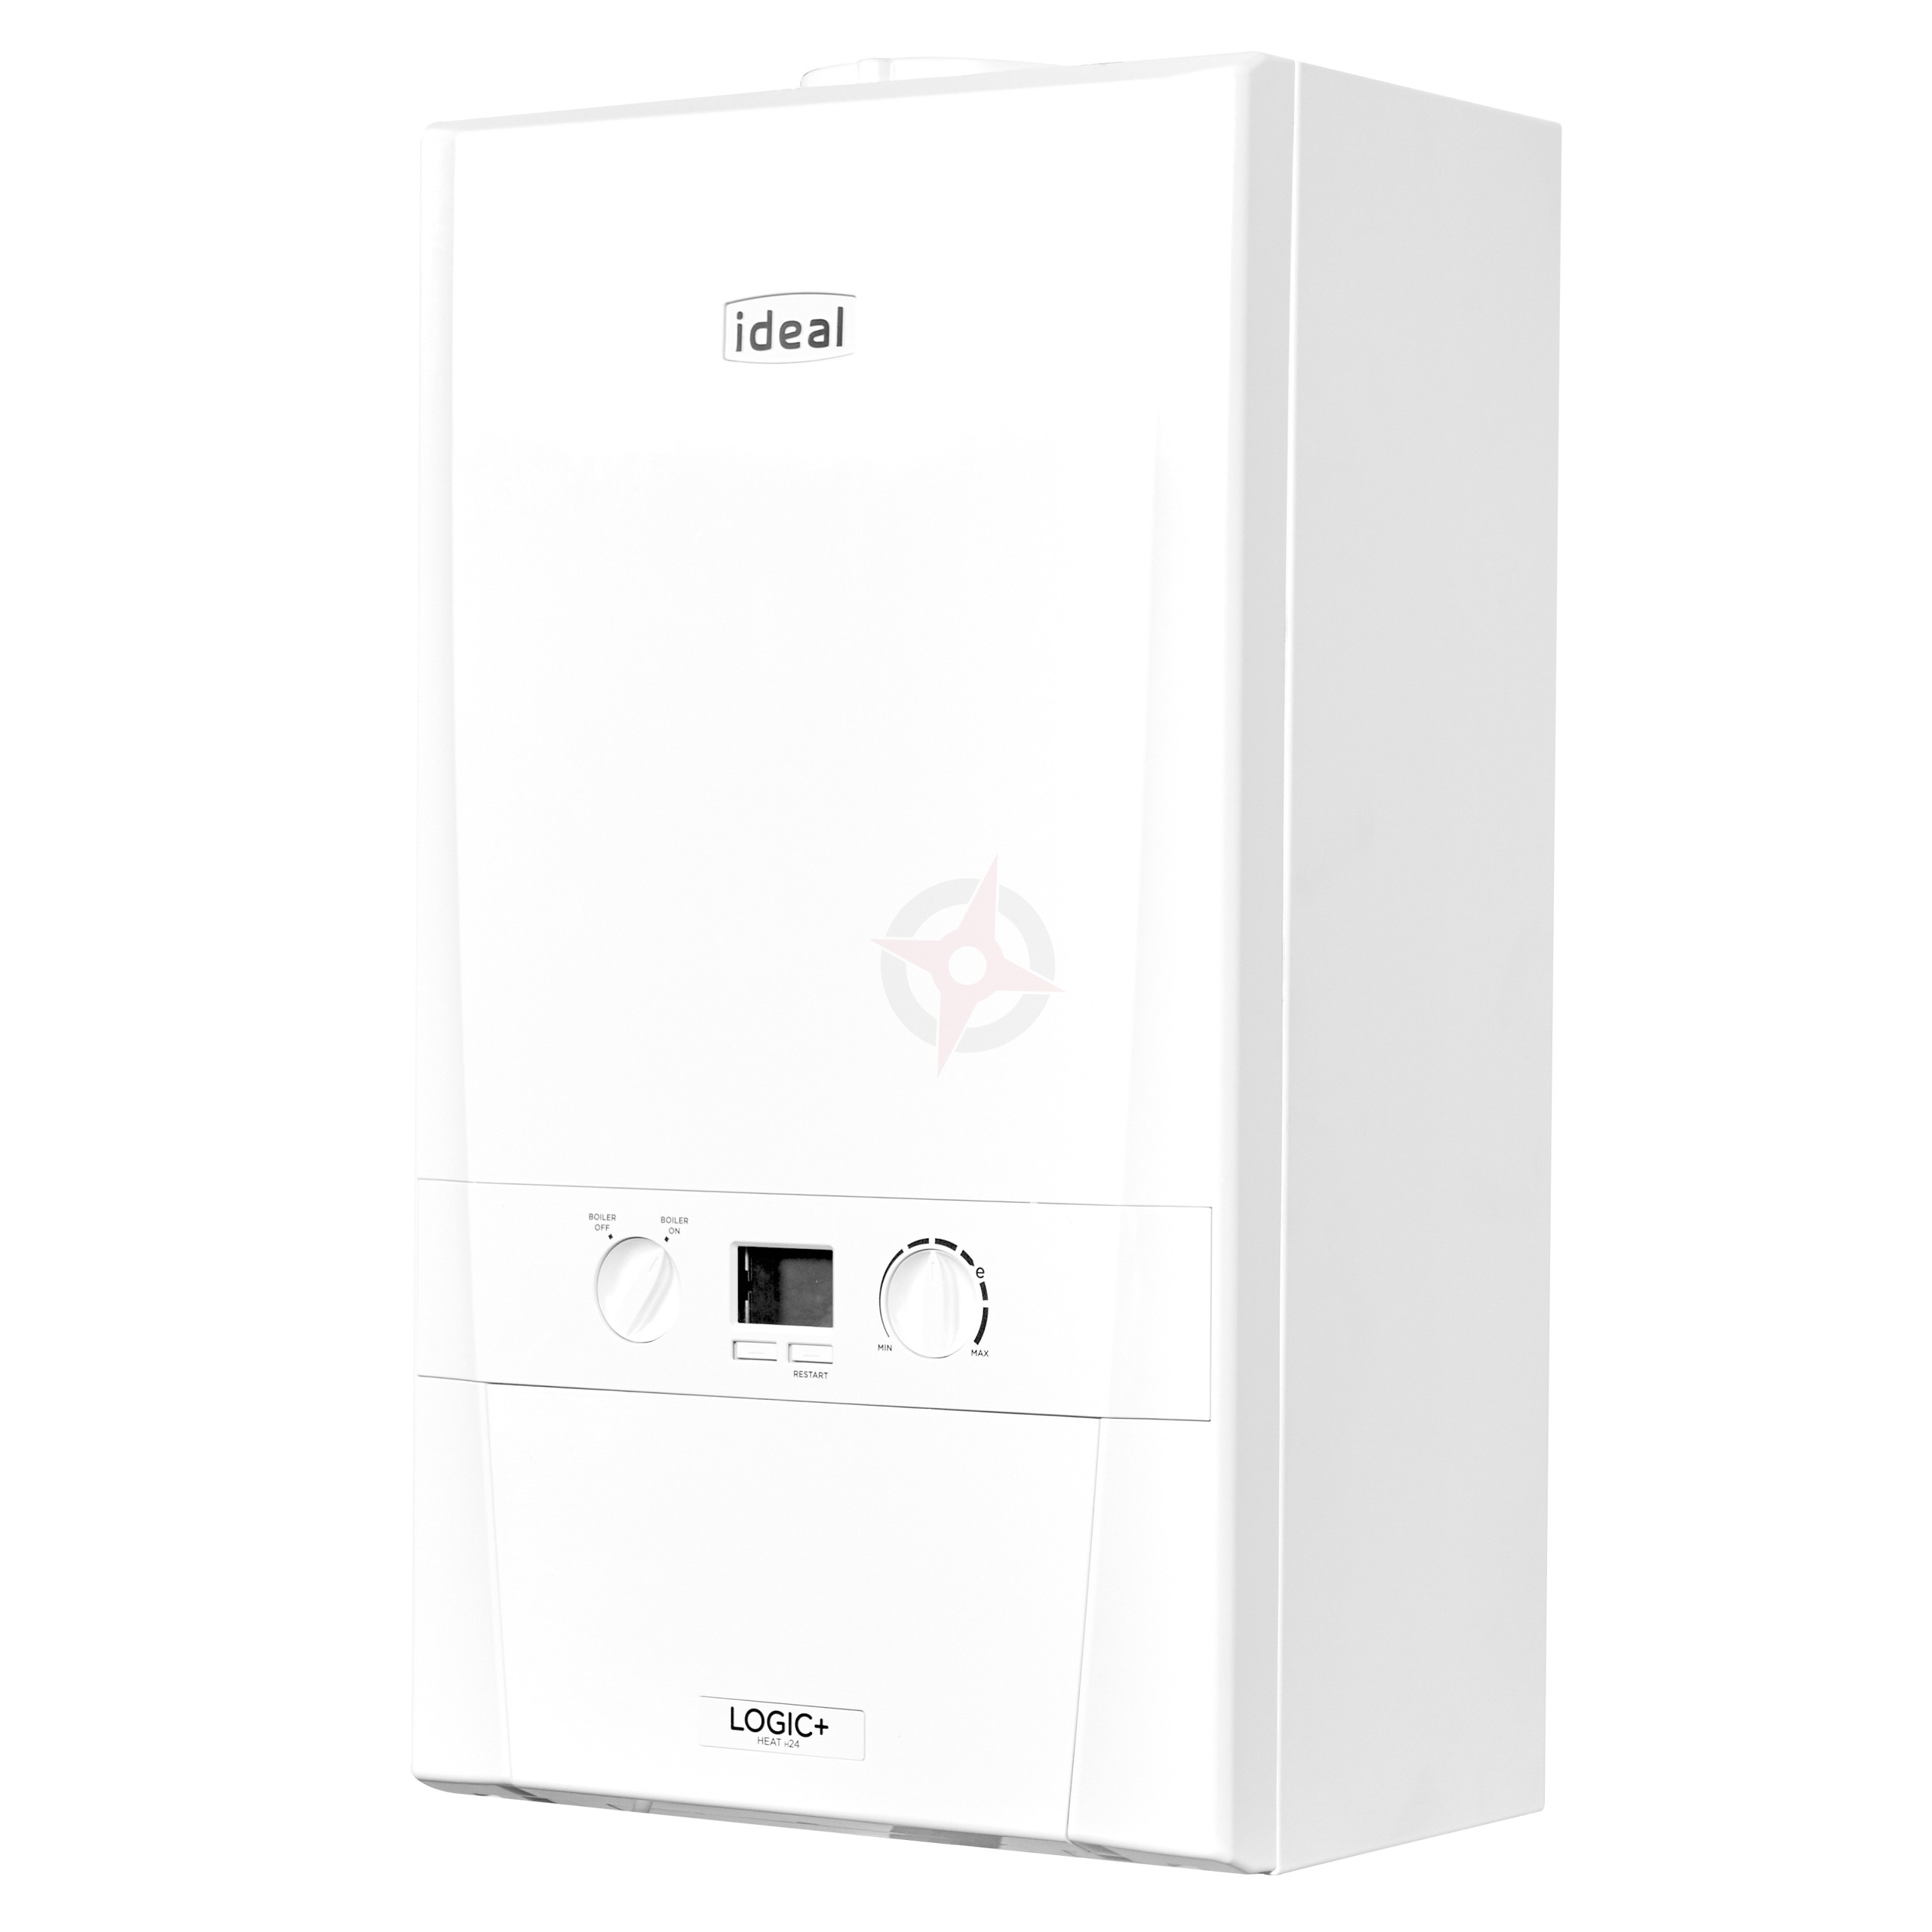 Ideal Logic+ (Plus model) 12 (ErP) Heat Boiler Only